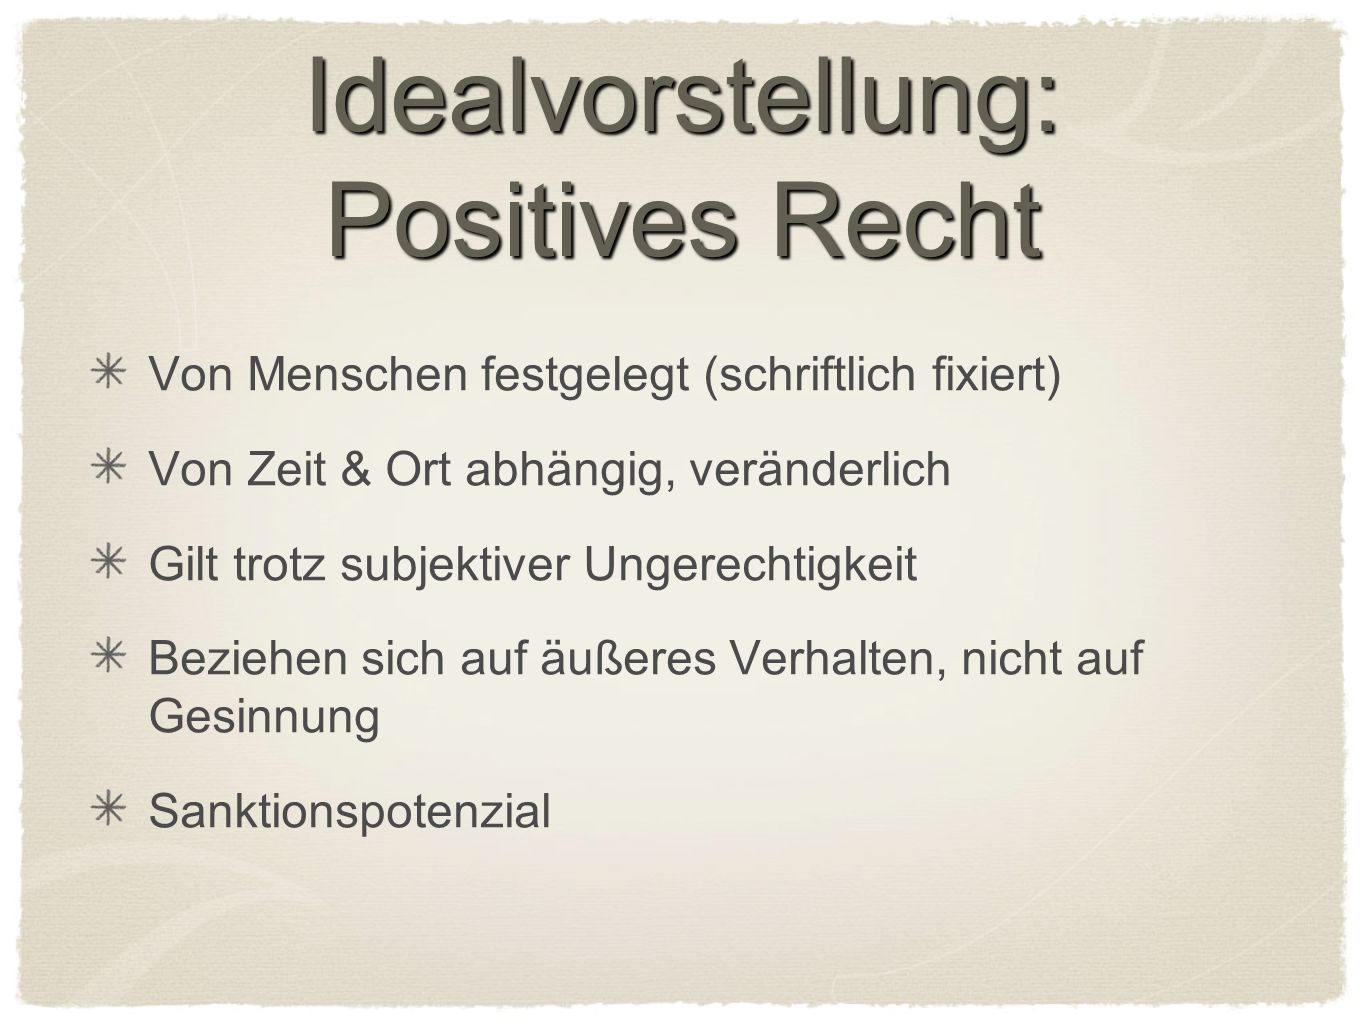 Idealvorstellung: Positives Recht